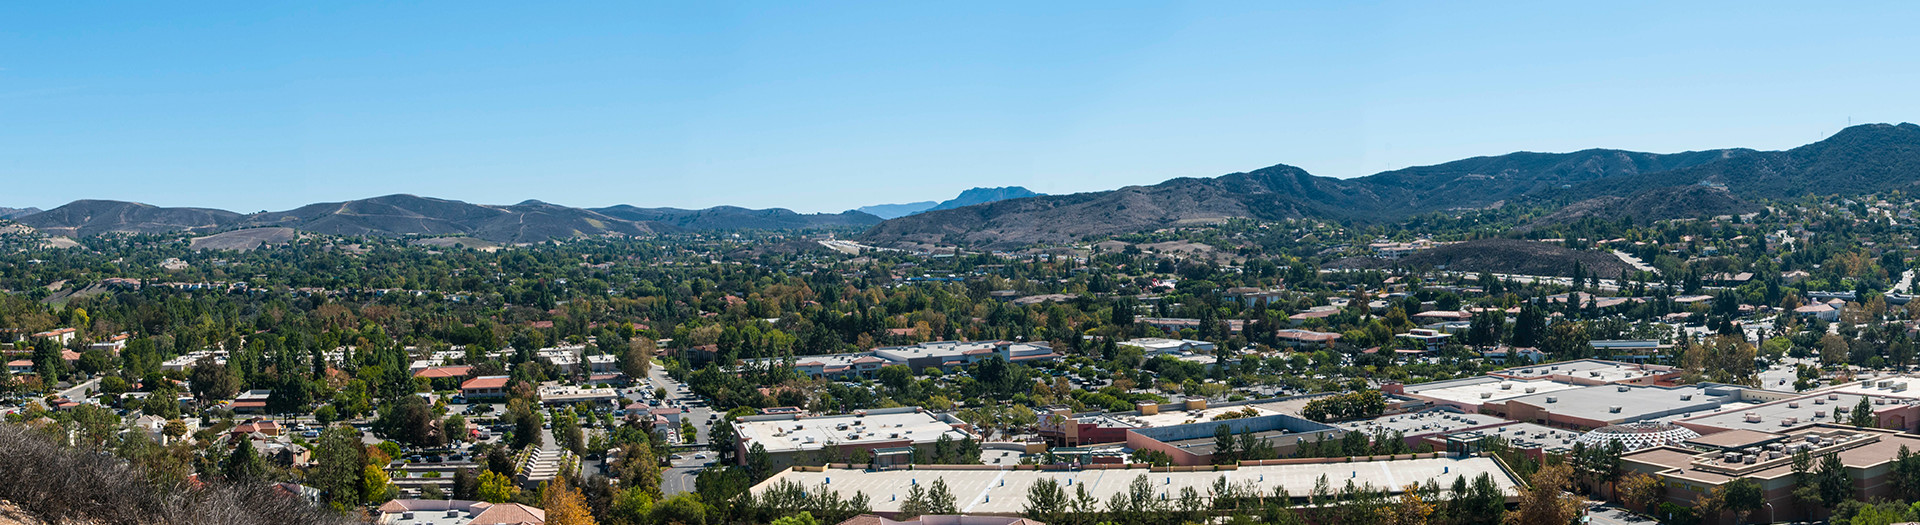 thousand oaks - photo #9